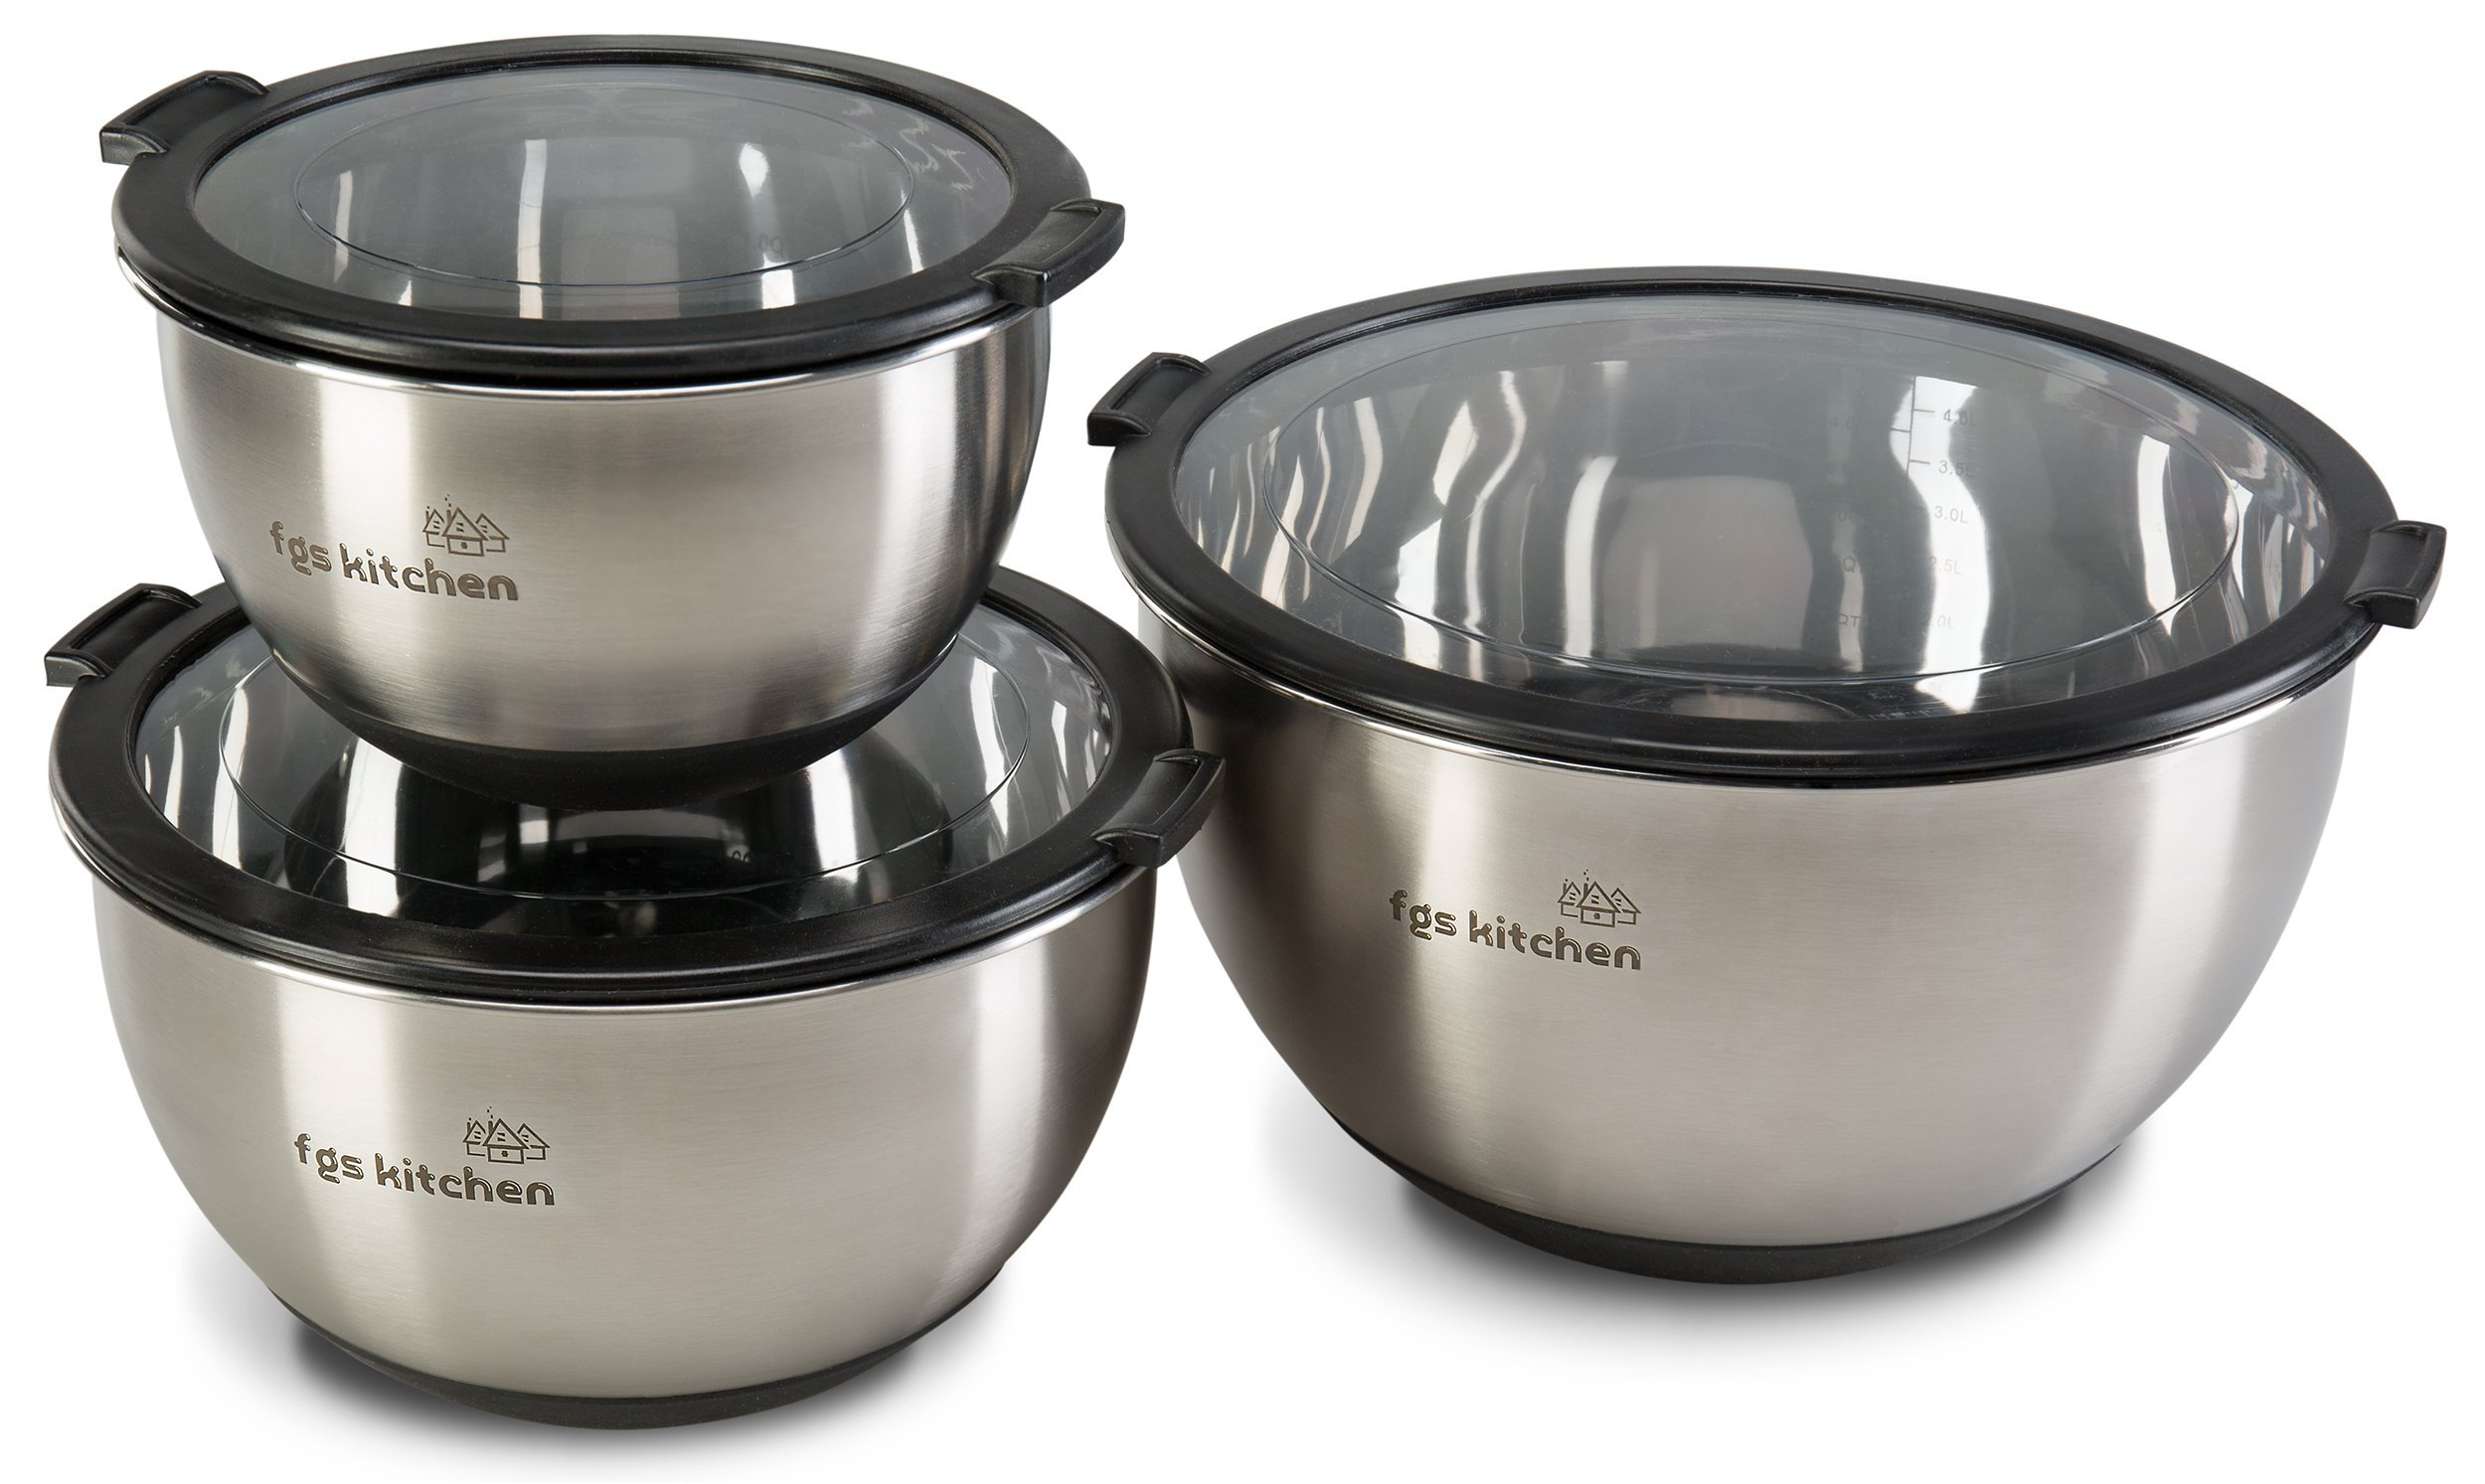 FGS Kitchen Stainless Steel Mixing Bowls with Transparent Lids